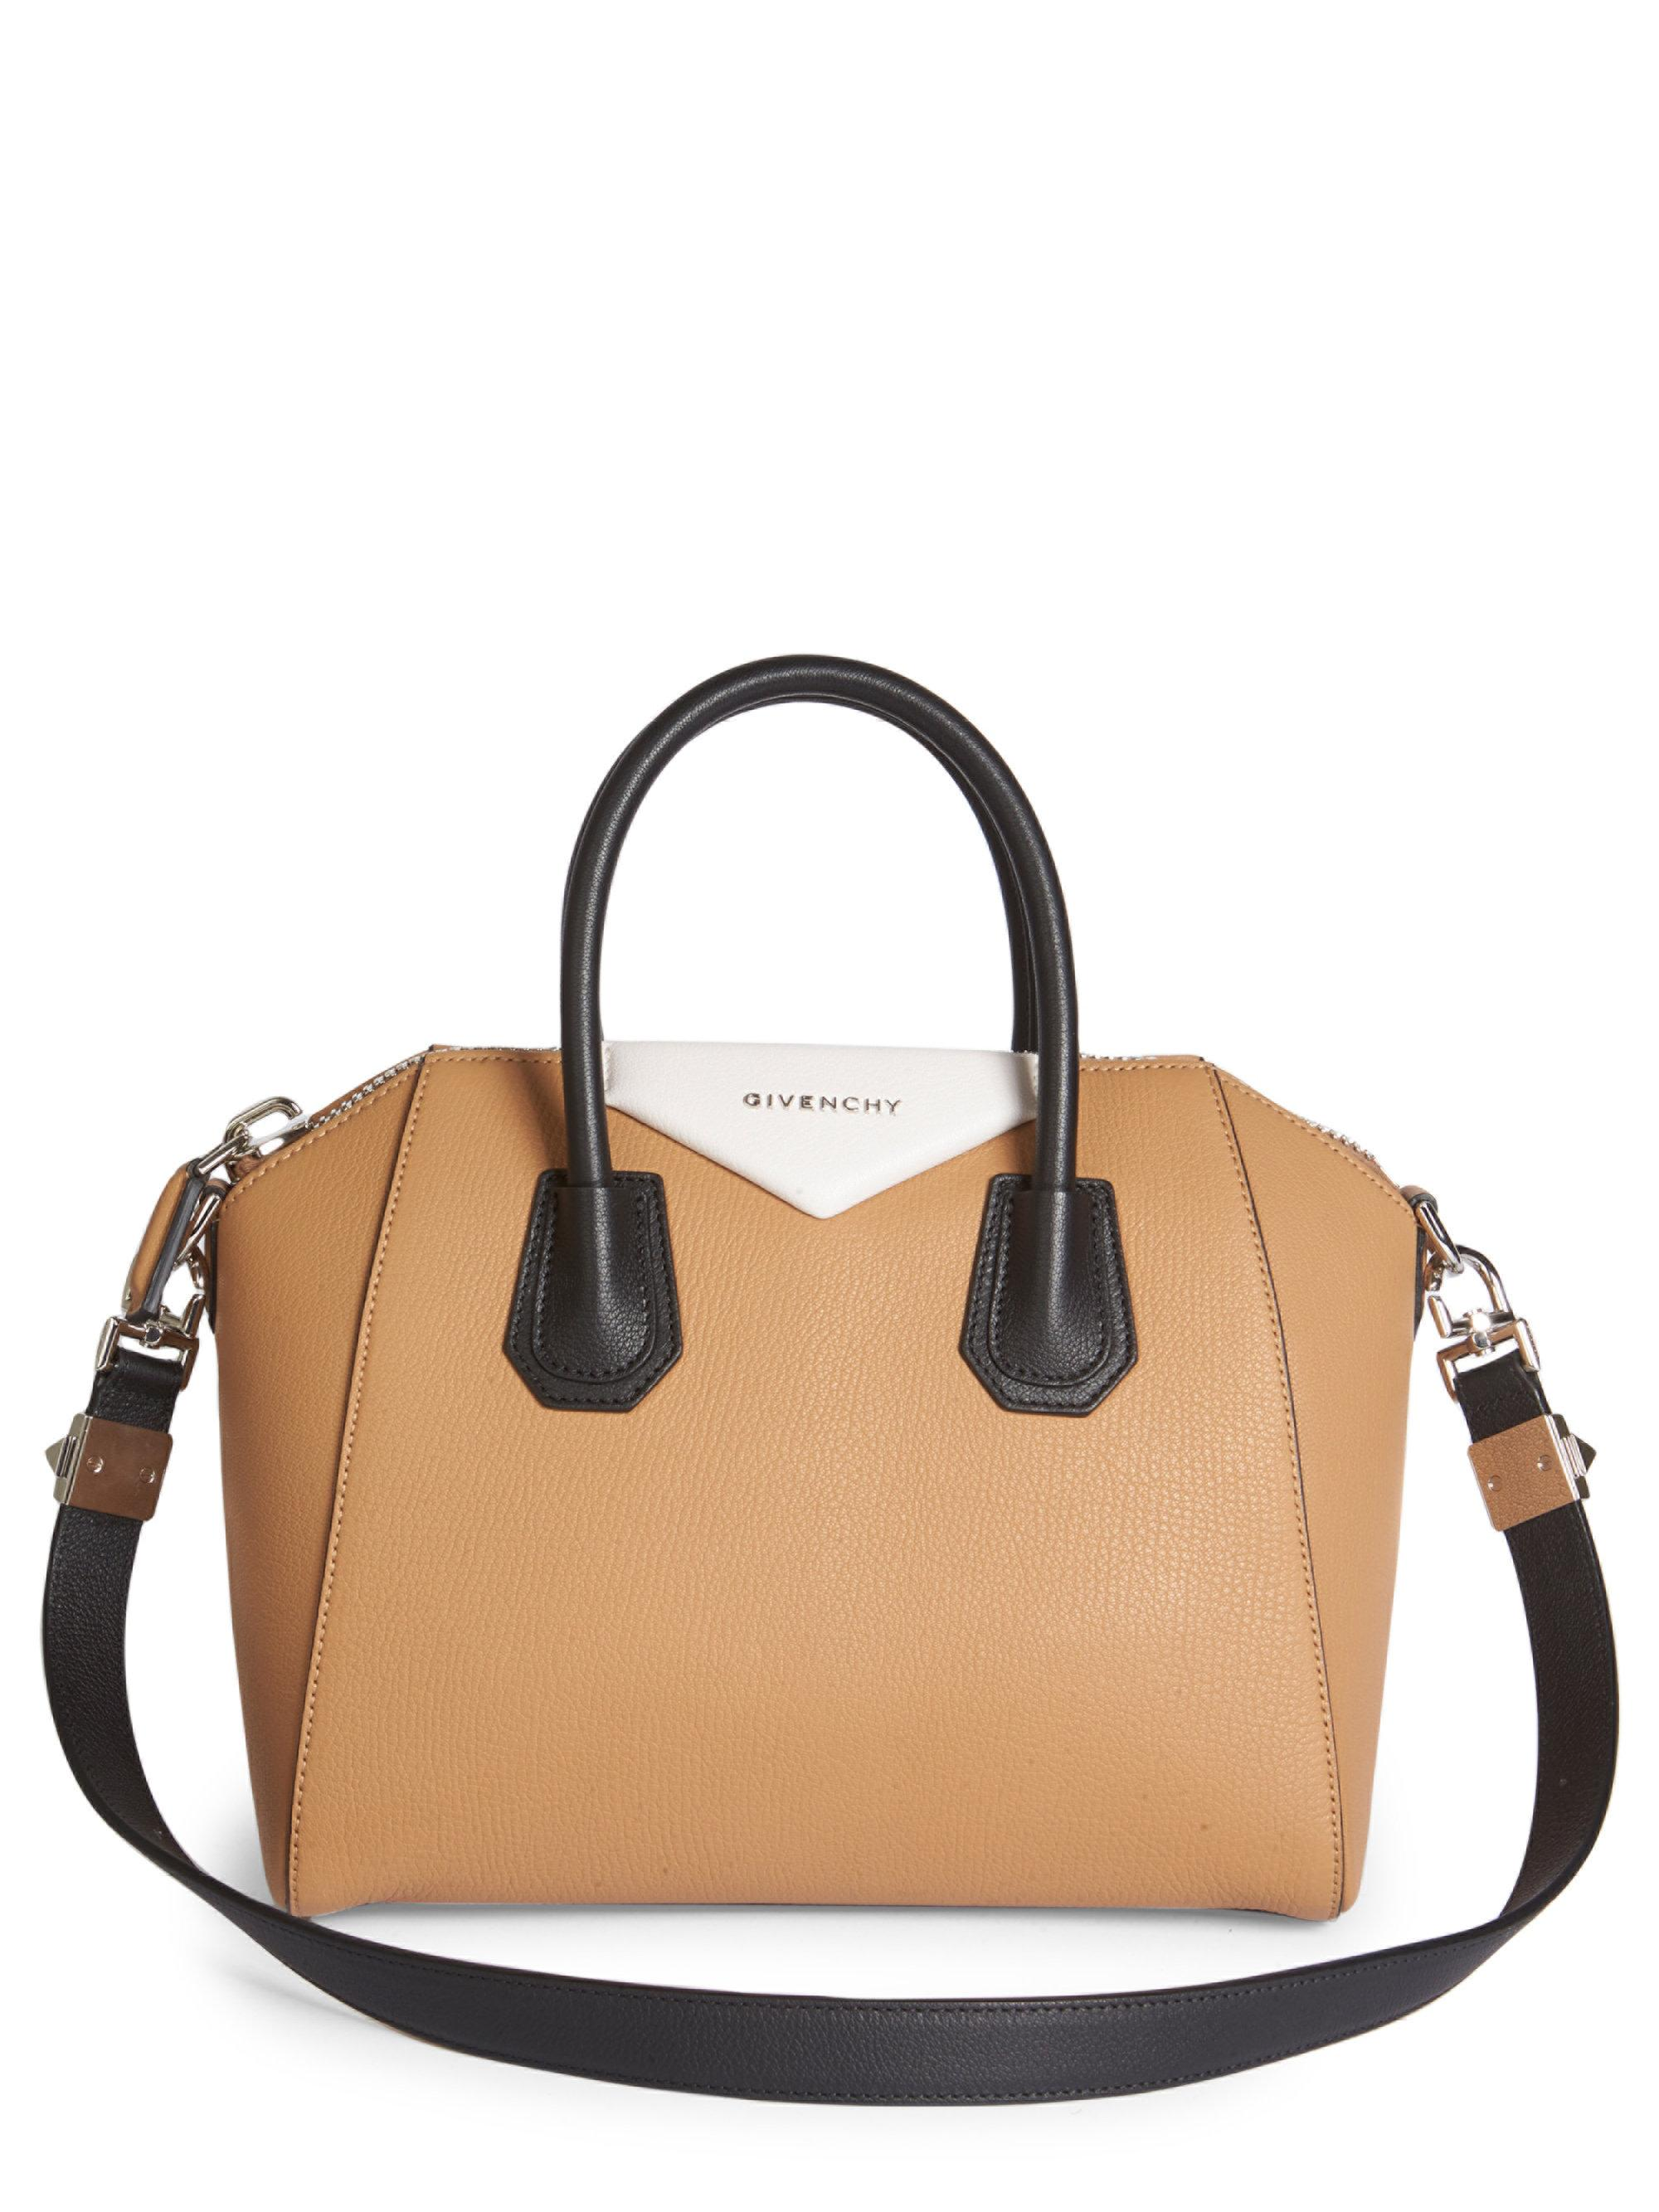 Gallery Previously Sold At Saks Fifth Avenue Women S Givenchy Antigona